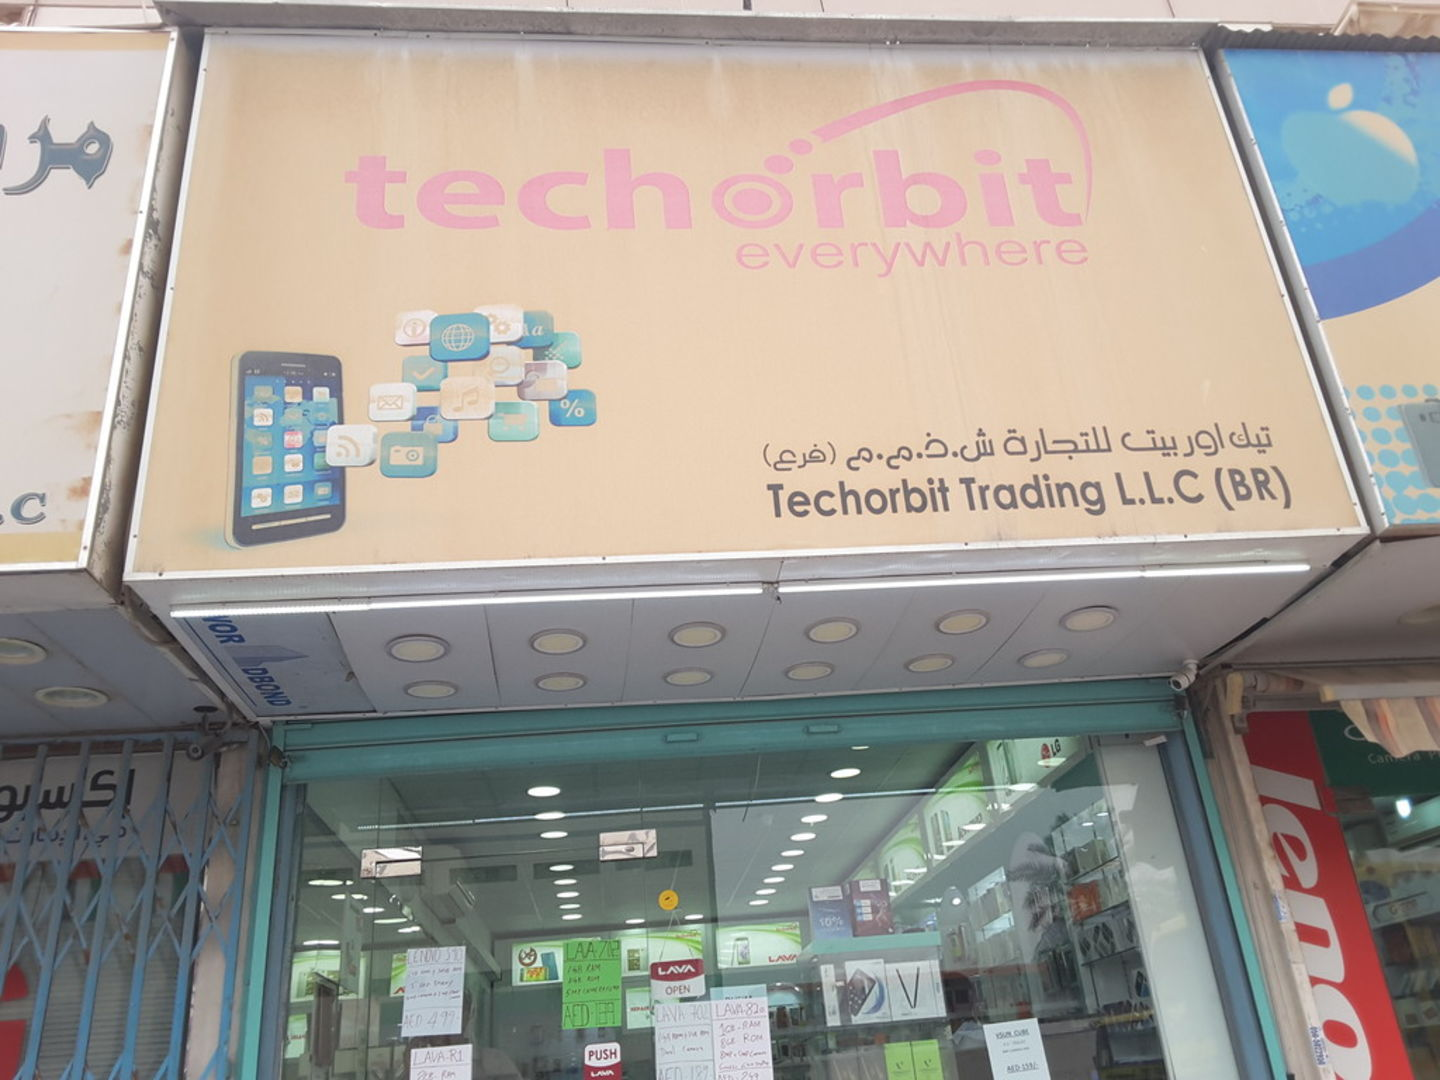 HiDubai-business-tech-orbit-trading-shopping-consumer-electronics-ras-al-khor-industrial-3-dubai-1